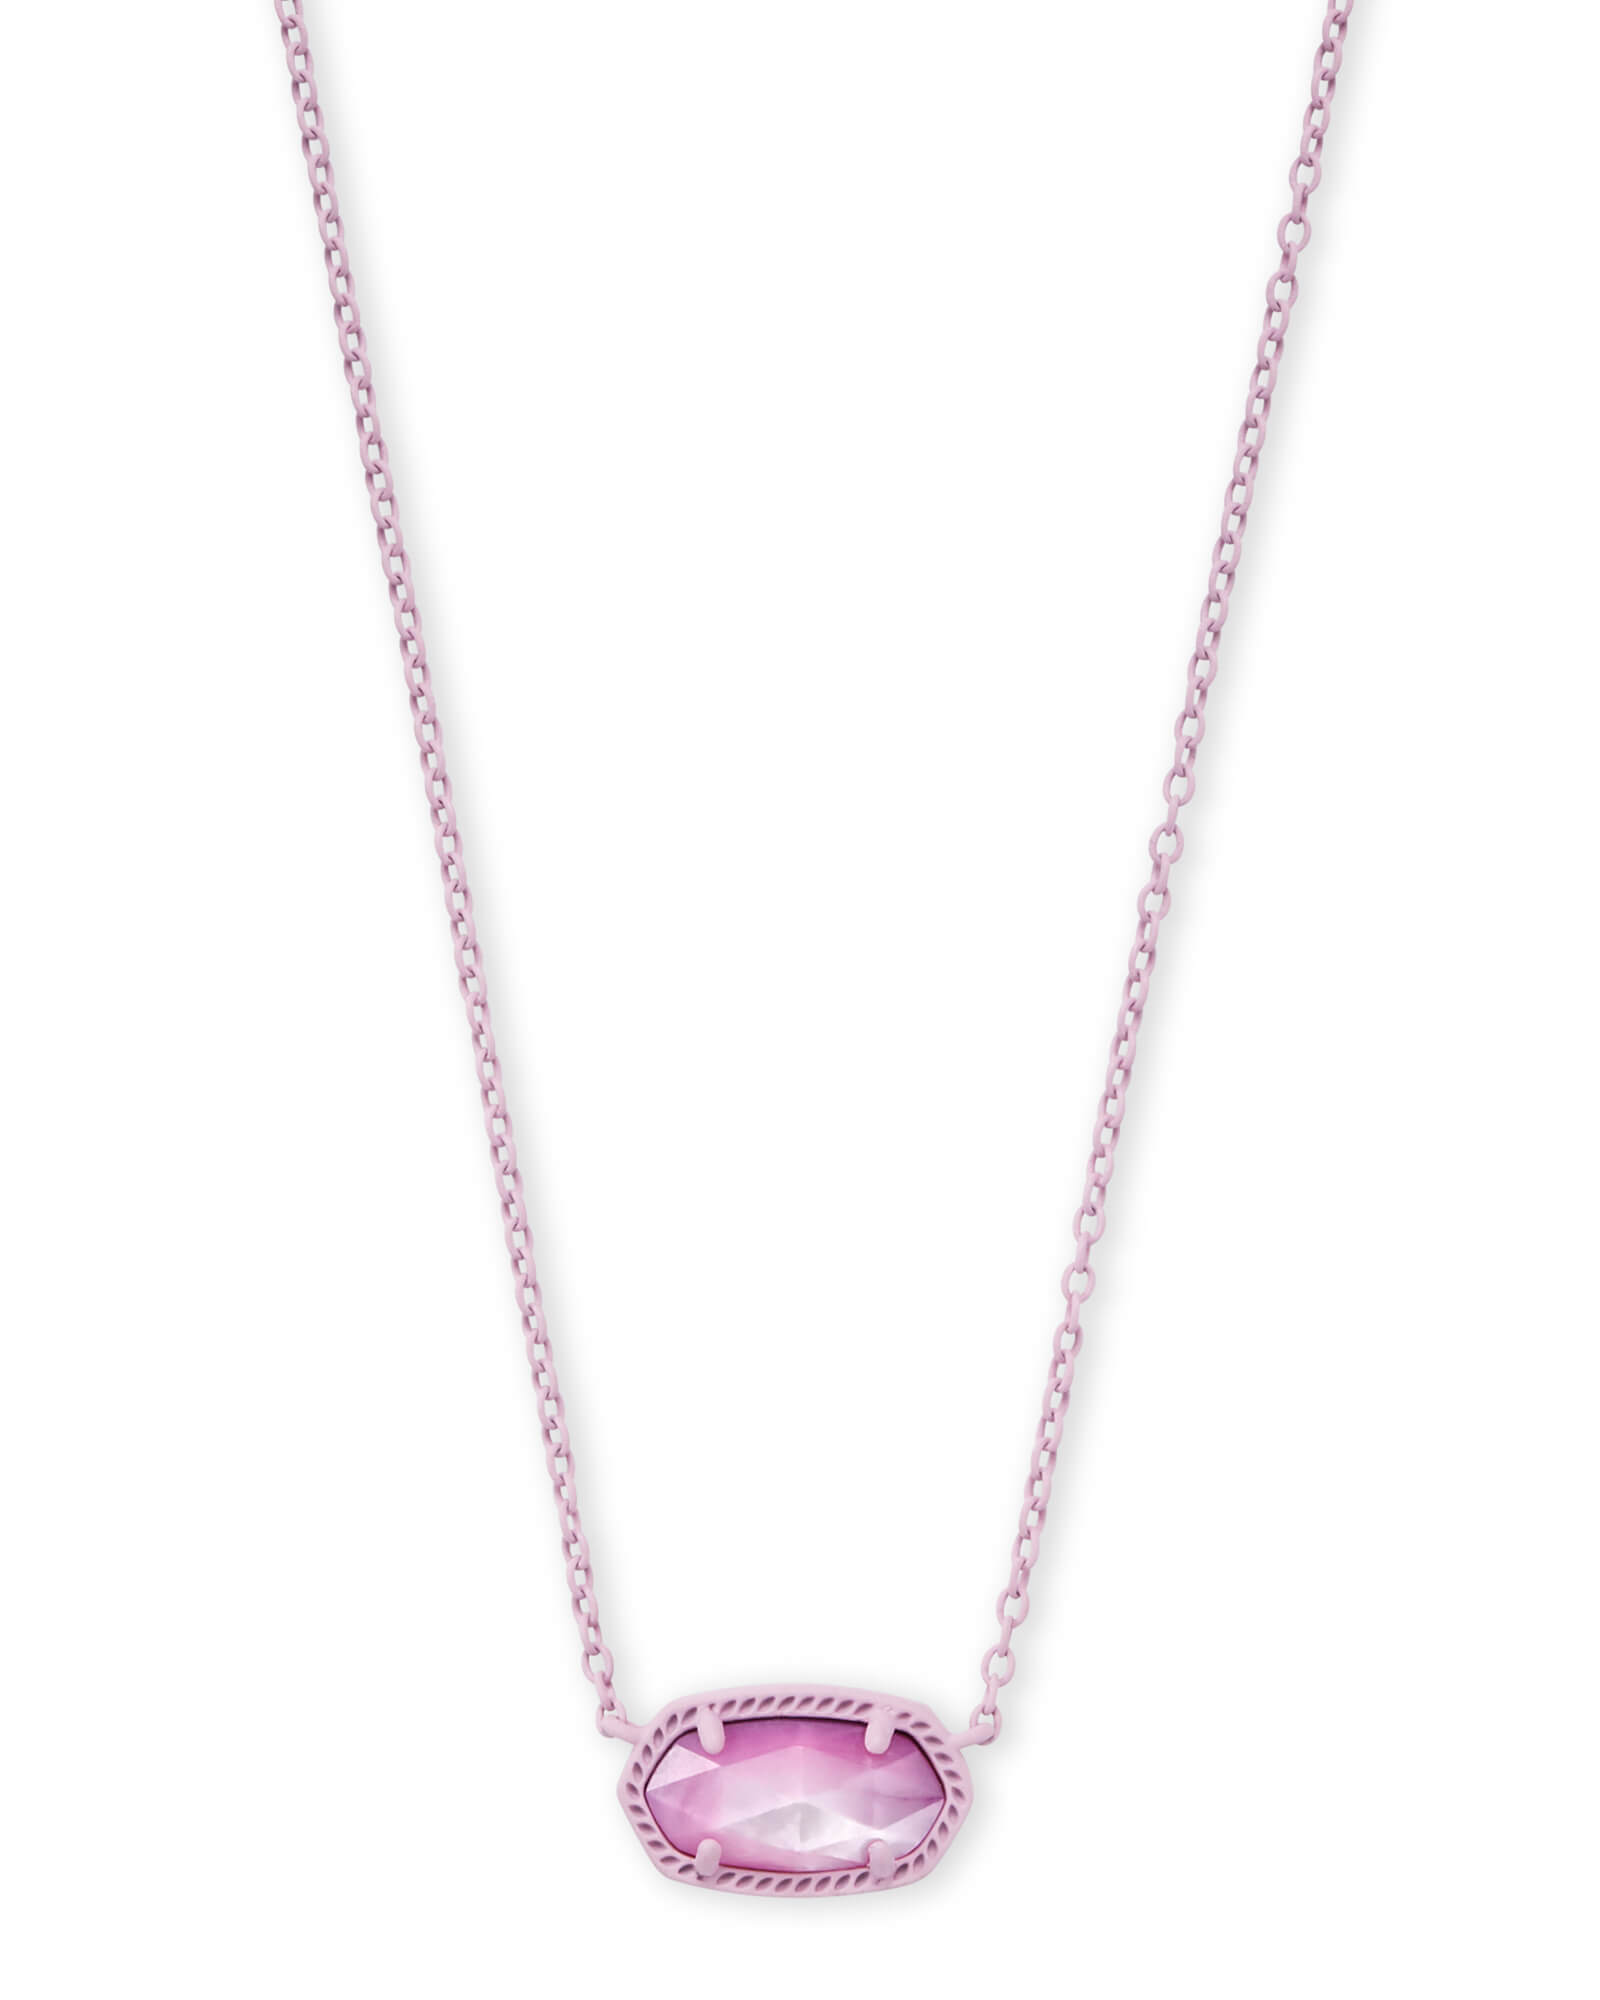 Elisa Matte Necklace in Lilac Mother of Pearl